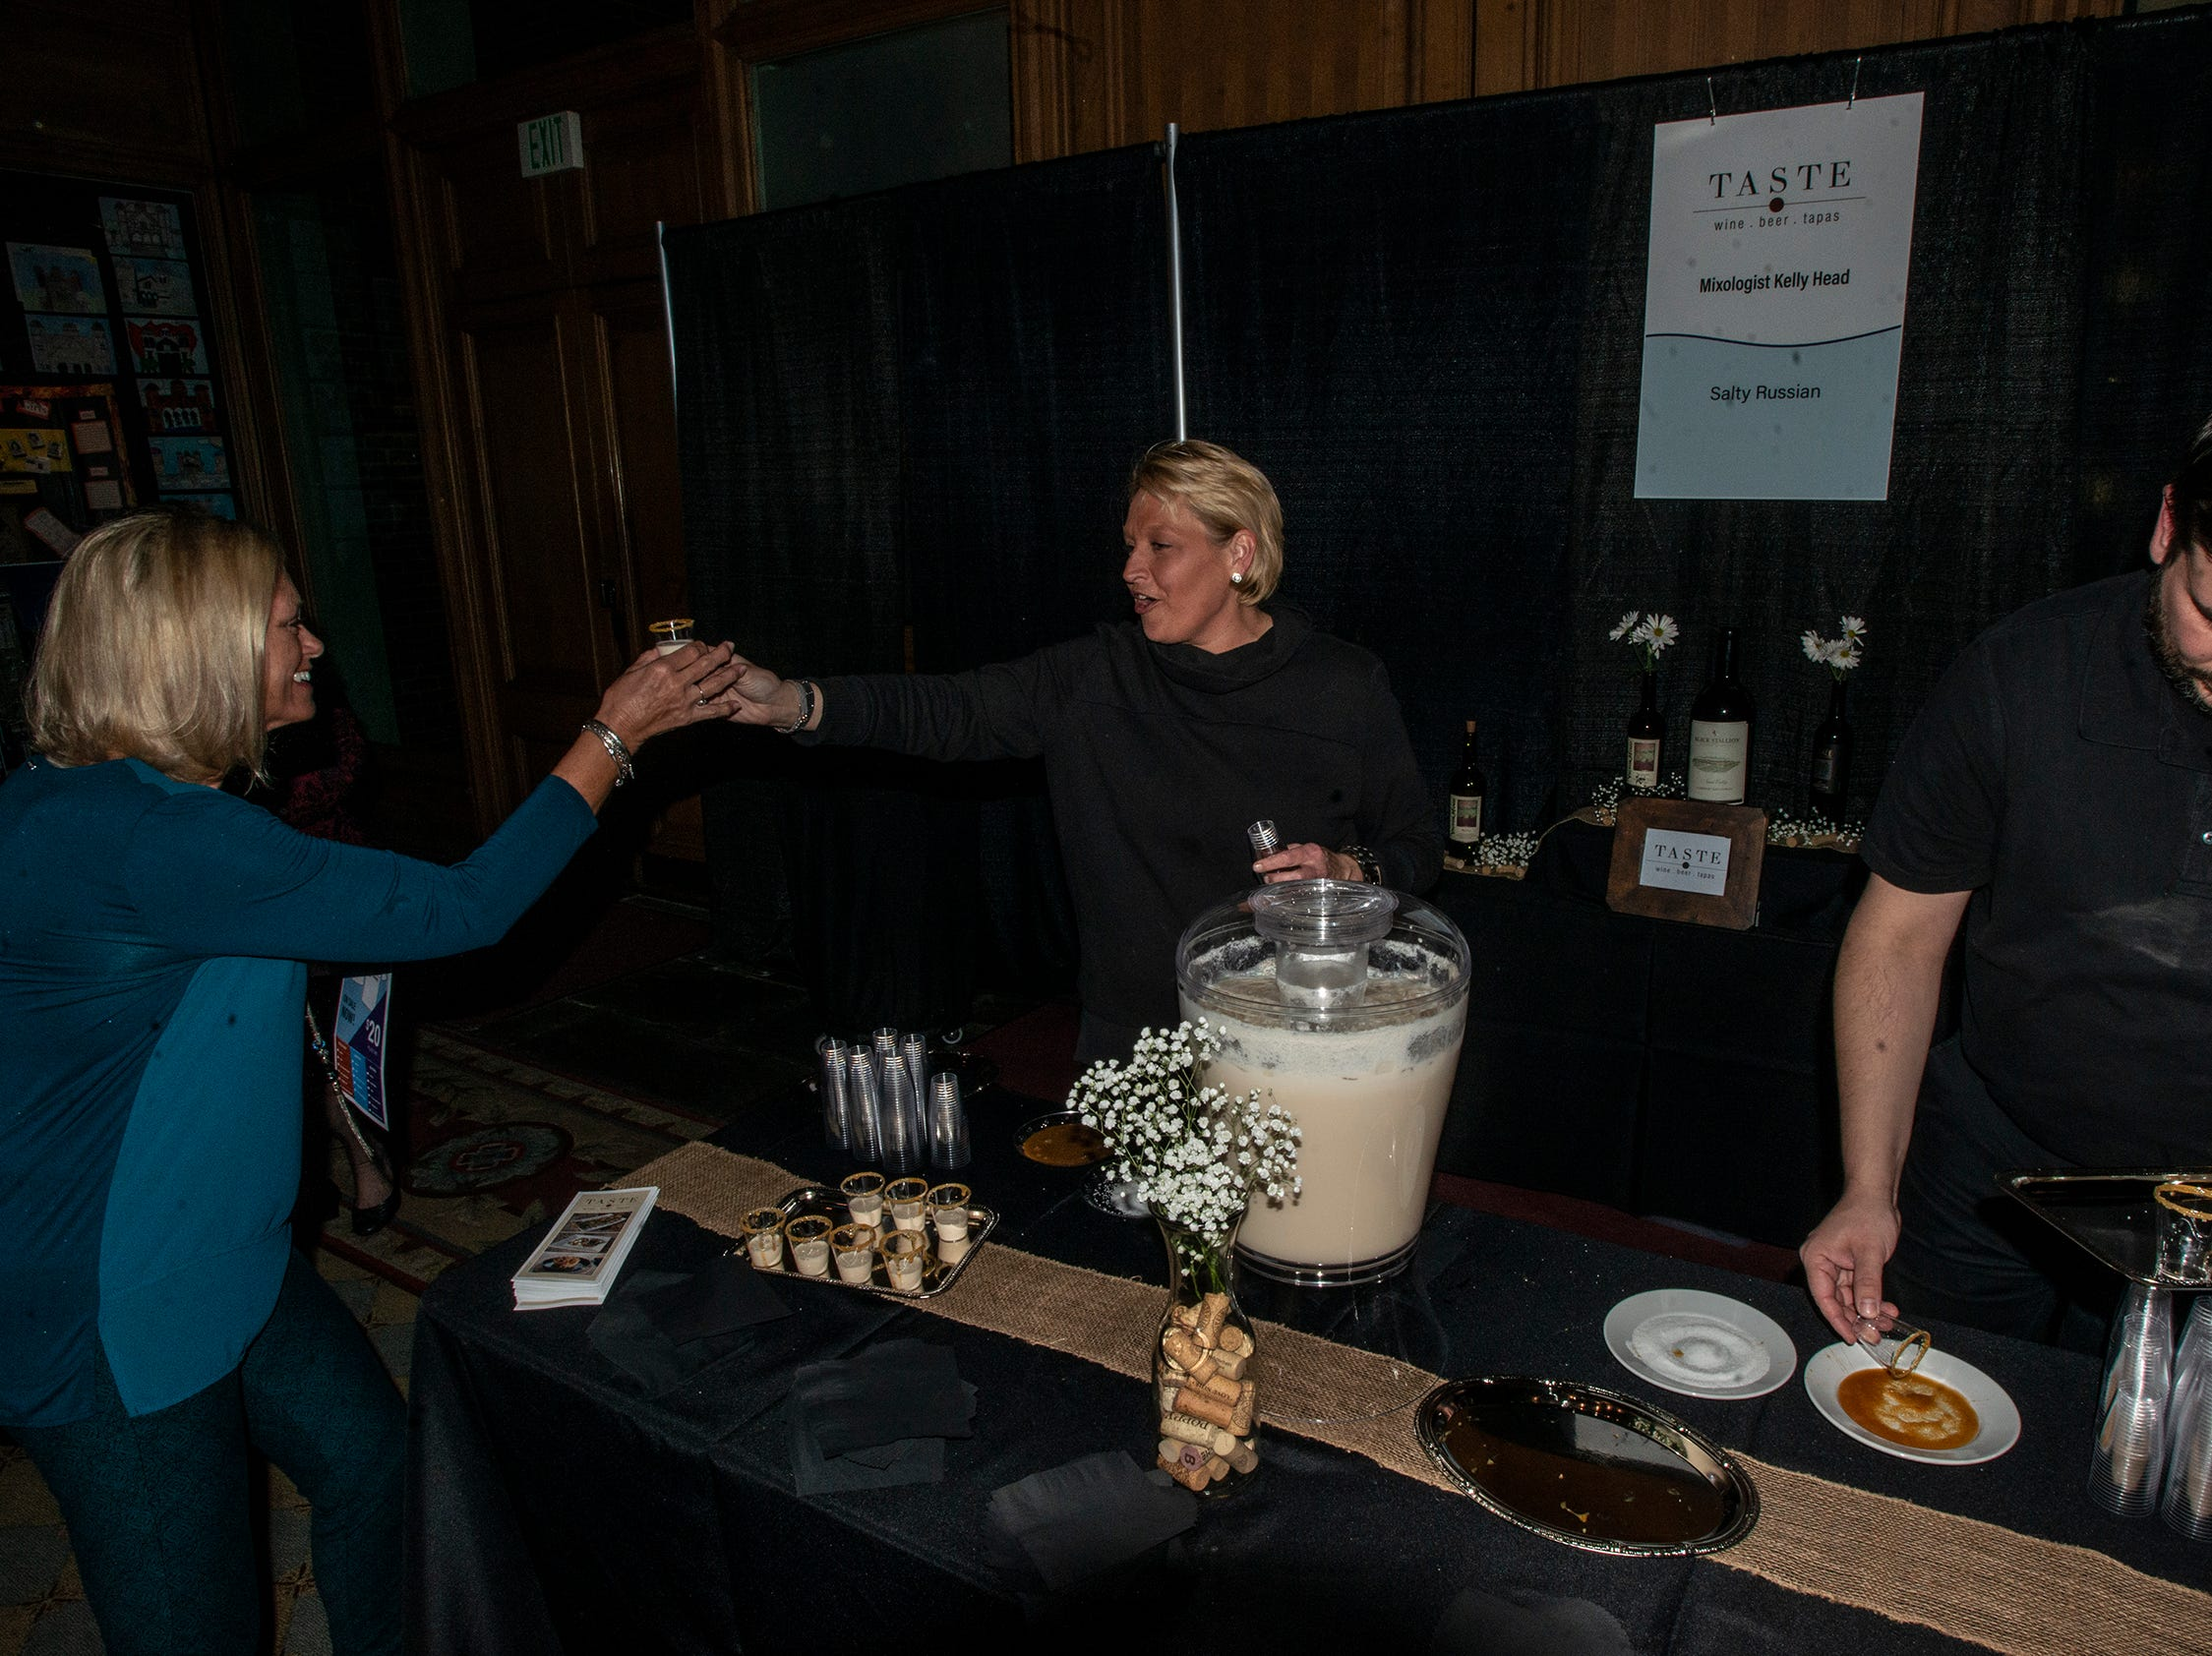 Taste serves guest Salty Russian drinks. The annual Feast of Flavours was held Monday, Jan. 28, 2019, at Alabama Shakespeare Festival in Montgomery.